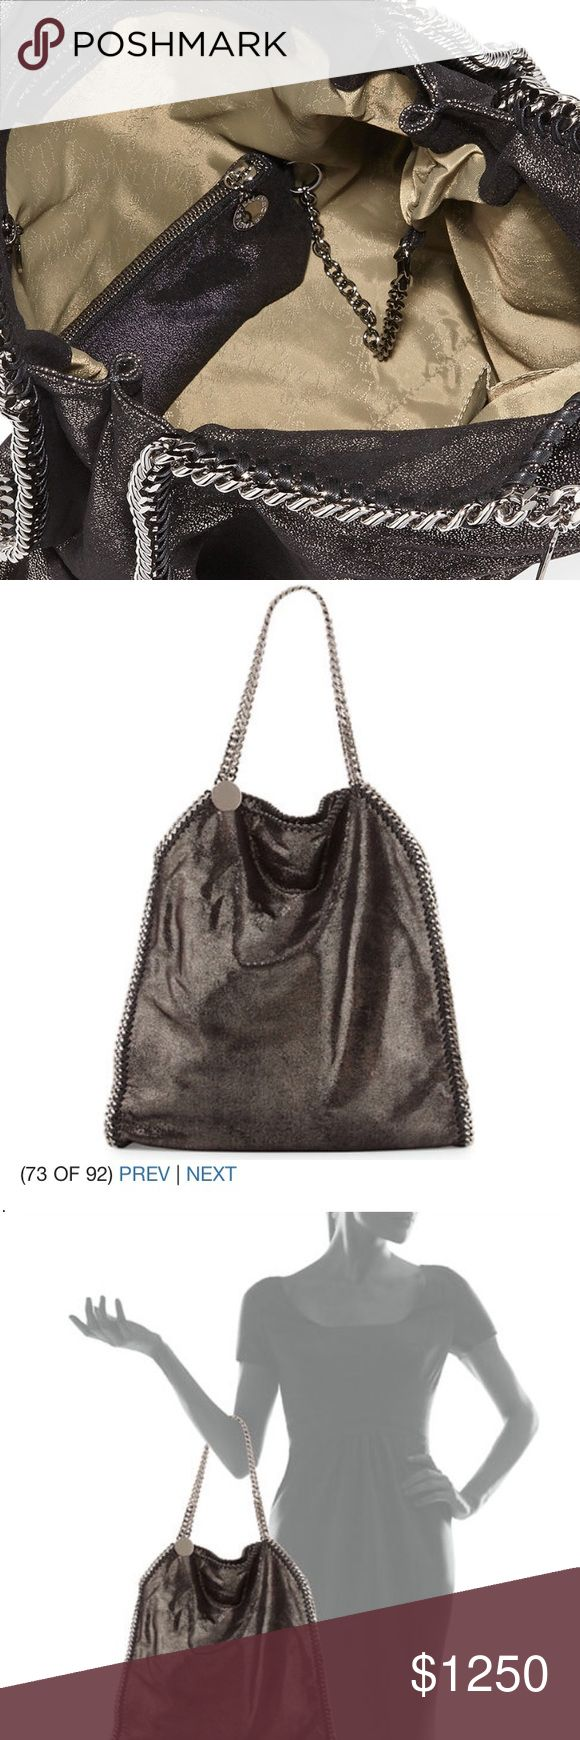 Stella McCartney Falabella Tote in Ruthenium. This is the large Stella McCartney Falabella handbag. It's stunning and even comes with a mini matching wallet inside! Stella McCartney Bags Shoulder Bags